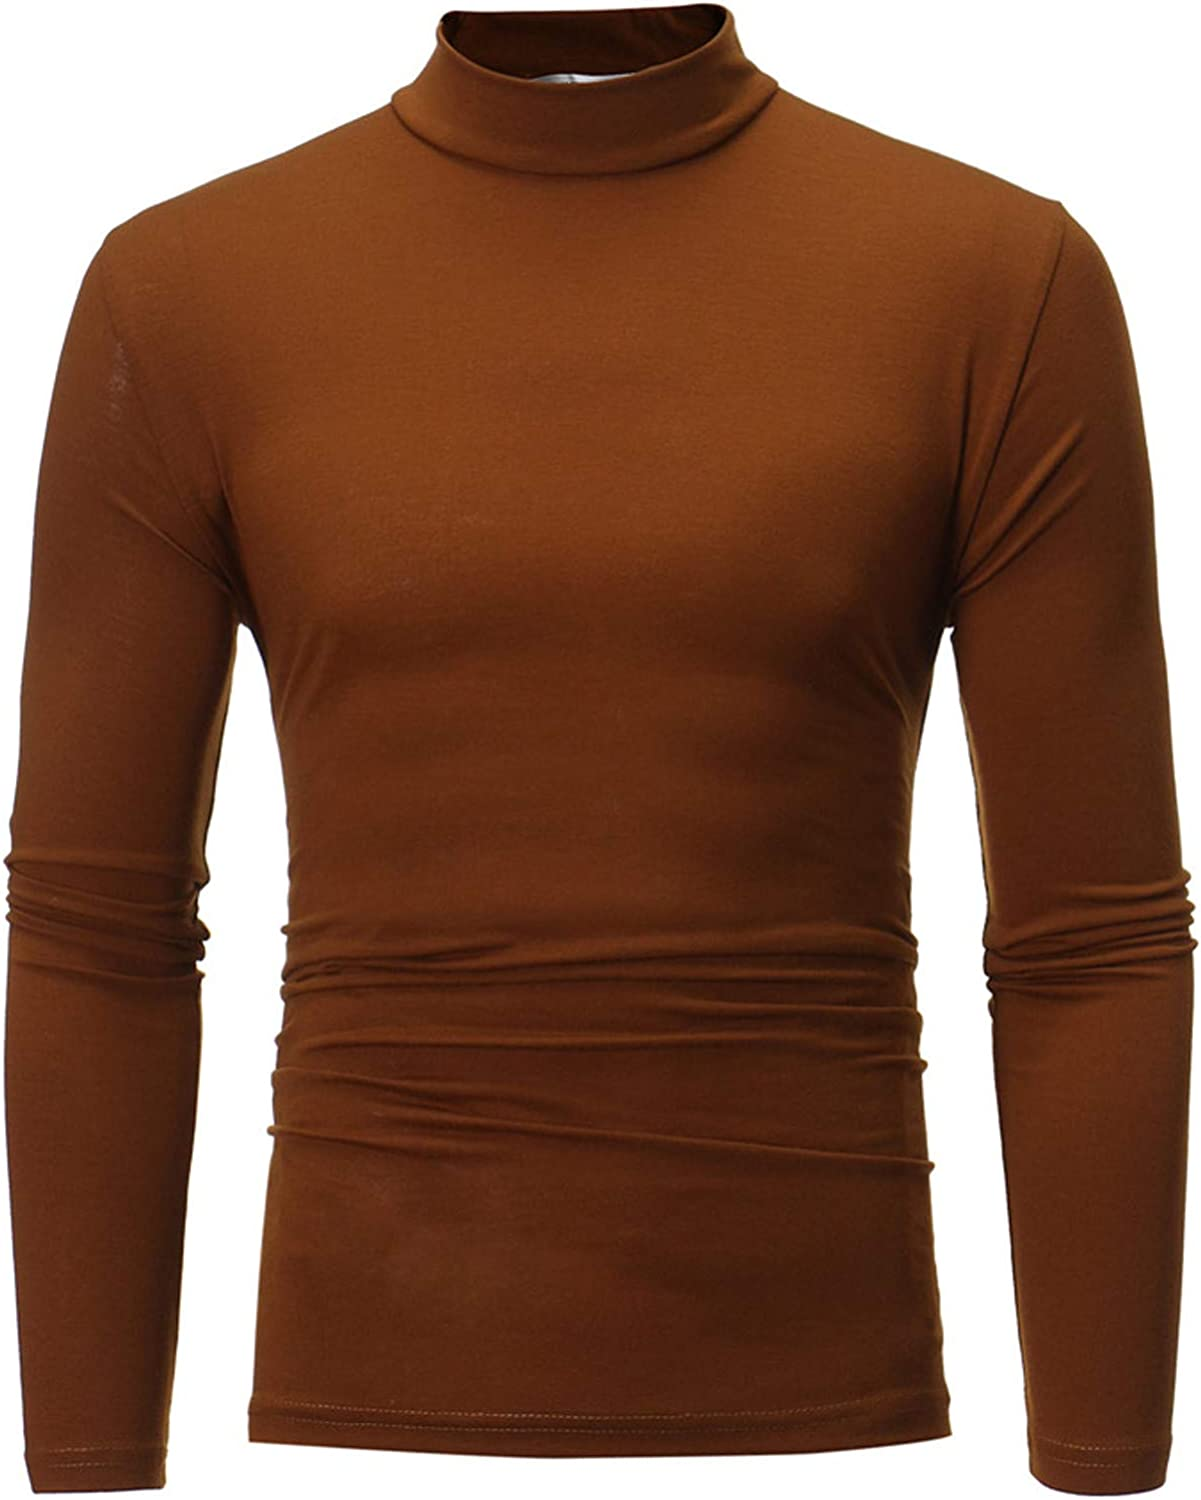 DZQUY Men Slim Fit Long Sleeve Turtleneck Pullover T-Shirts Casual Lightweight Basic Stretch Bottoming Shirt Tops Blouse